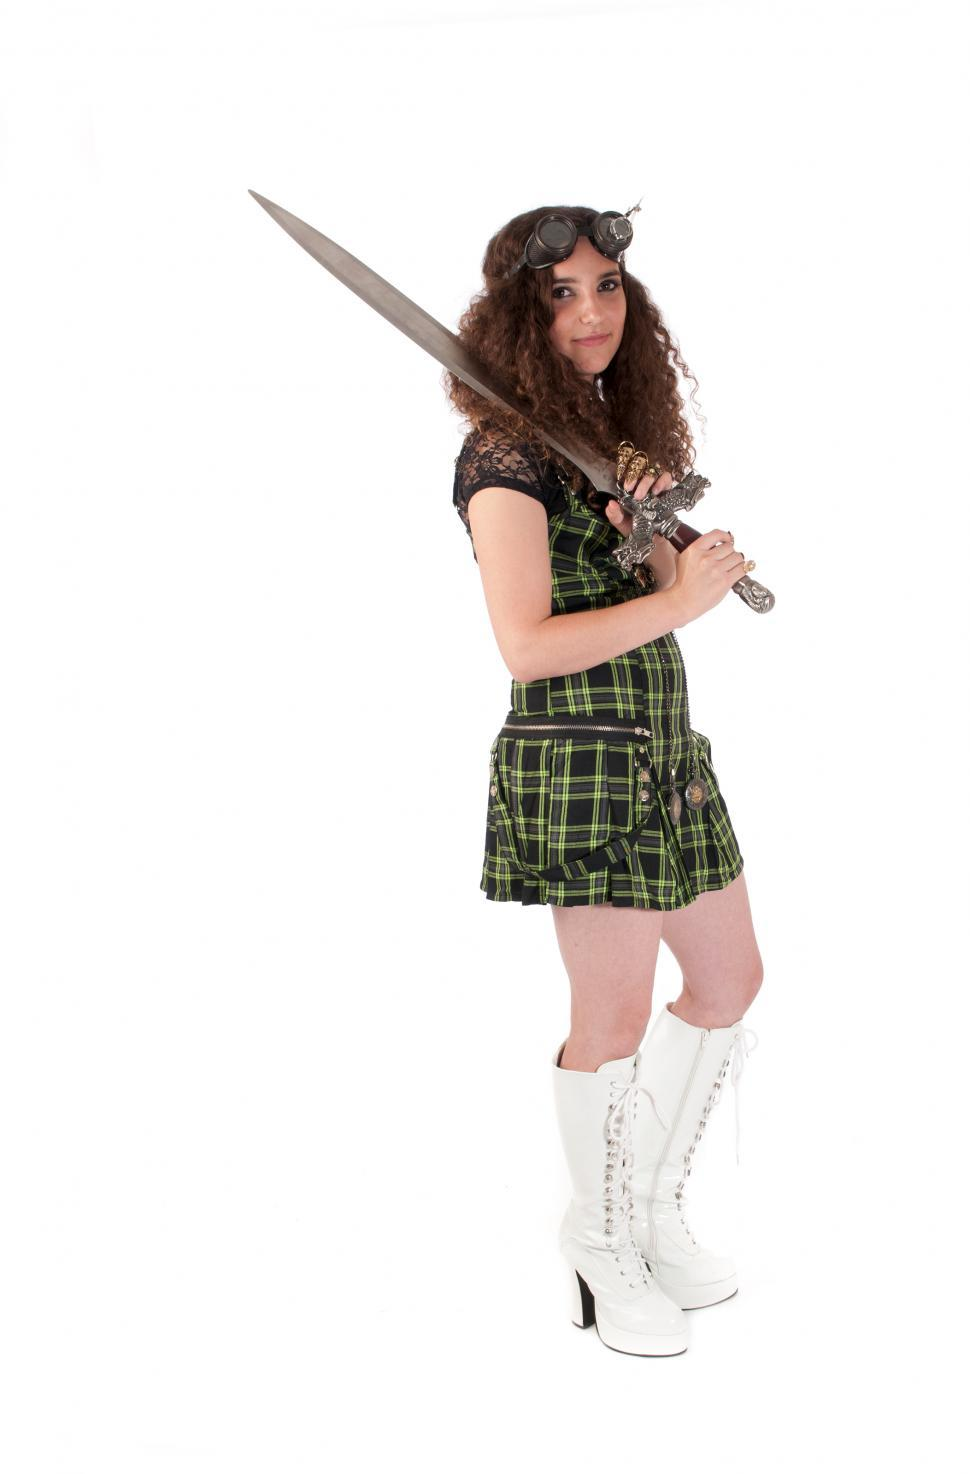 Download Free Stock Photo of Warrior girl